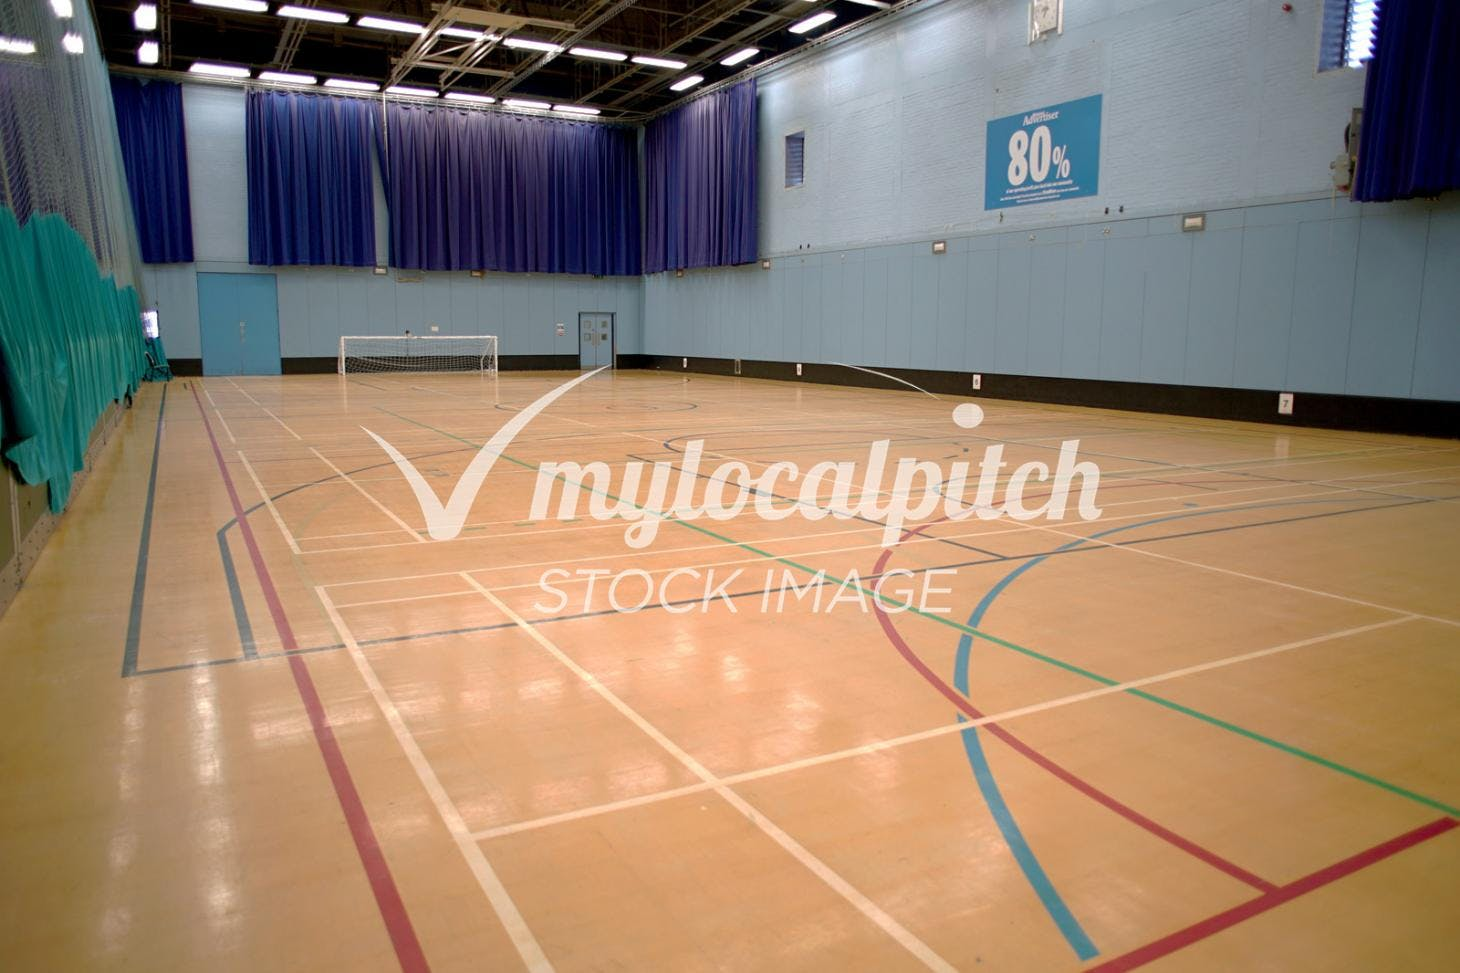 Langley Park Sports Centre 5 a side | Indoor football pitch